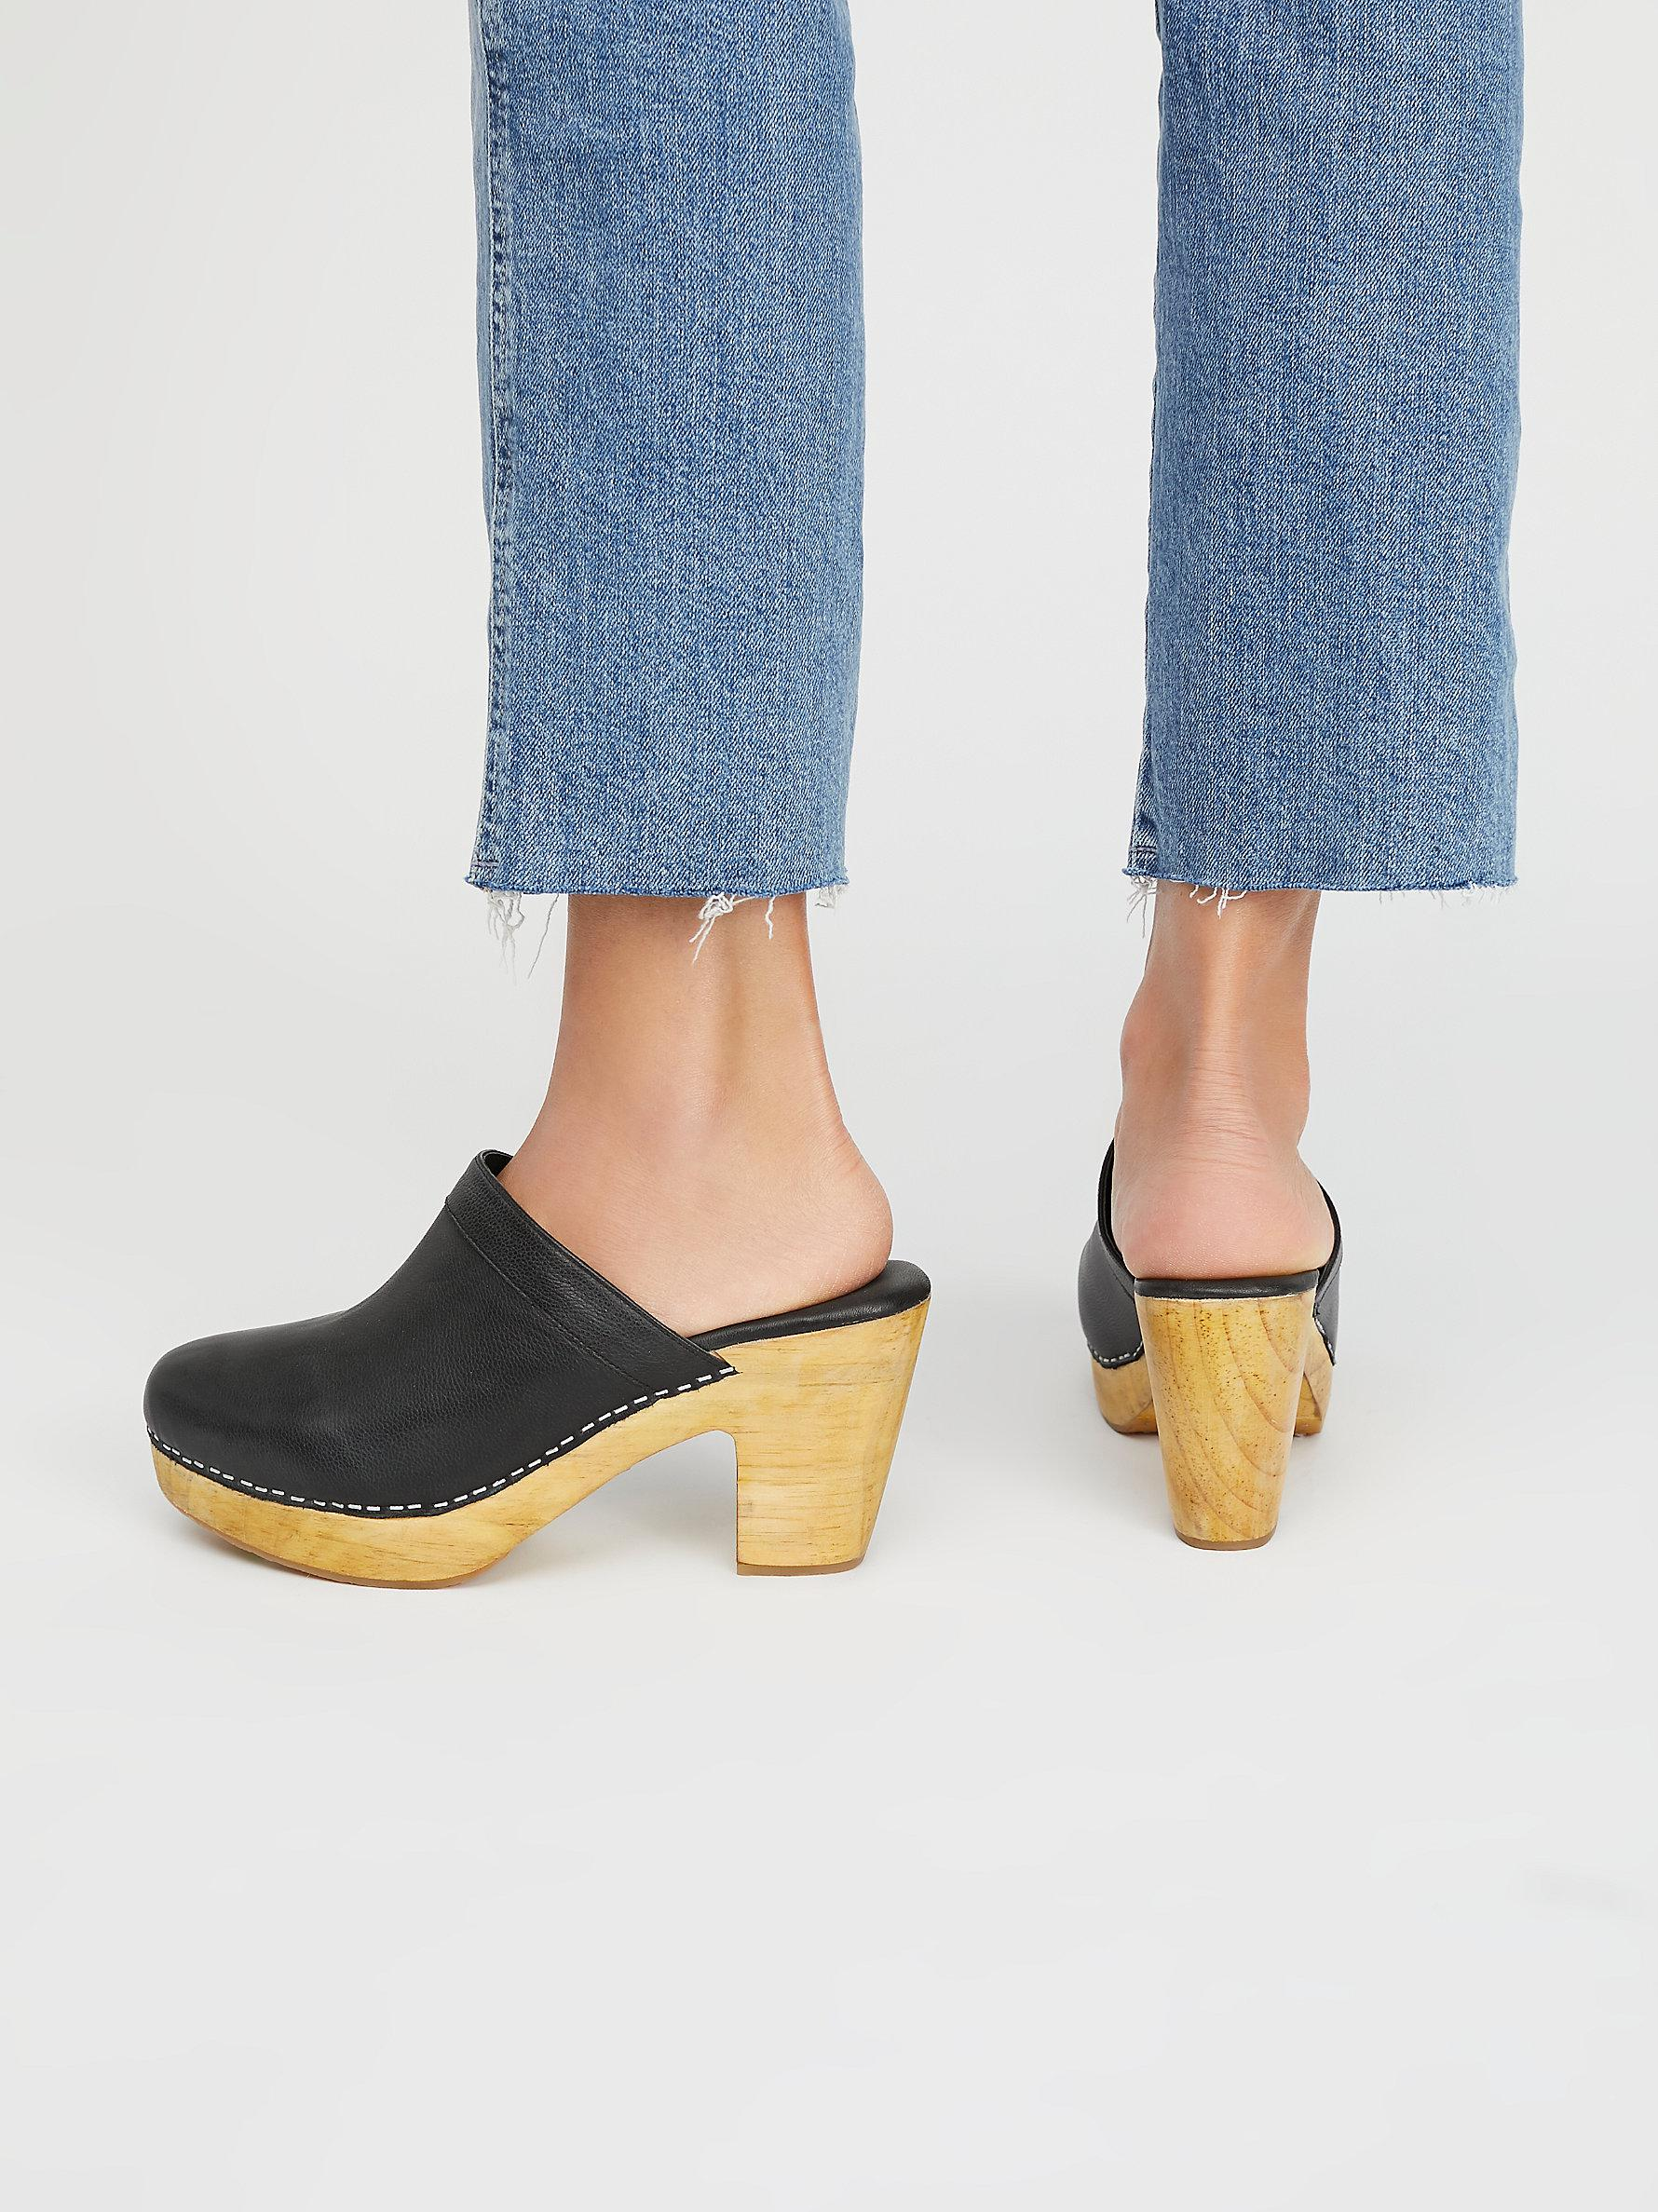 recommend for sale Highland Park Clog free shipping pay with paypal buy cheap 2014 new discount wholesale price C0rlb